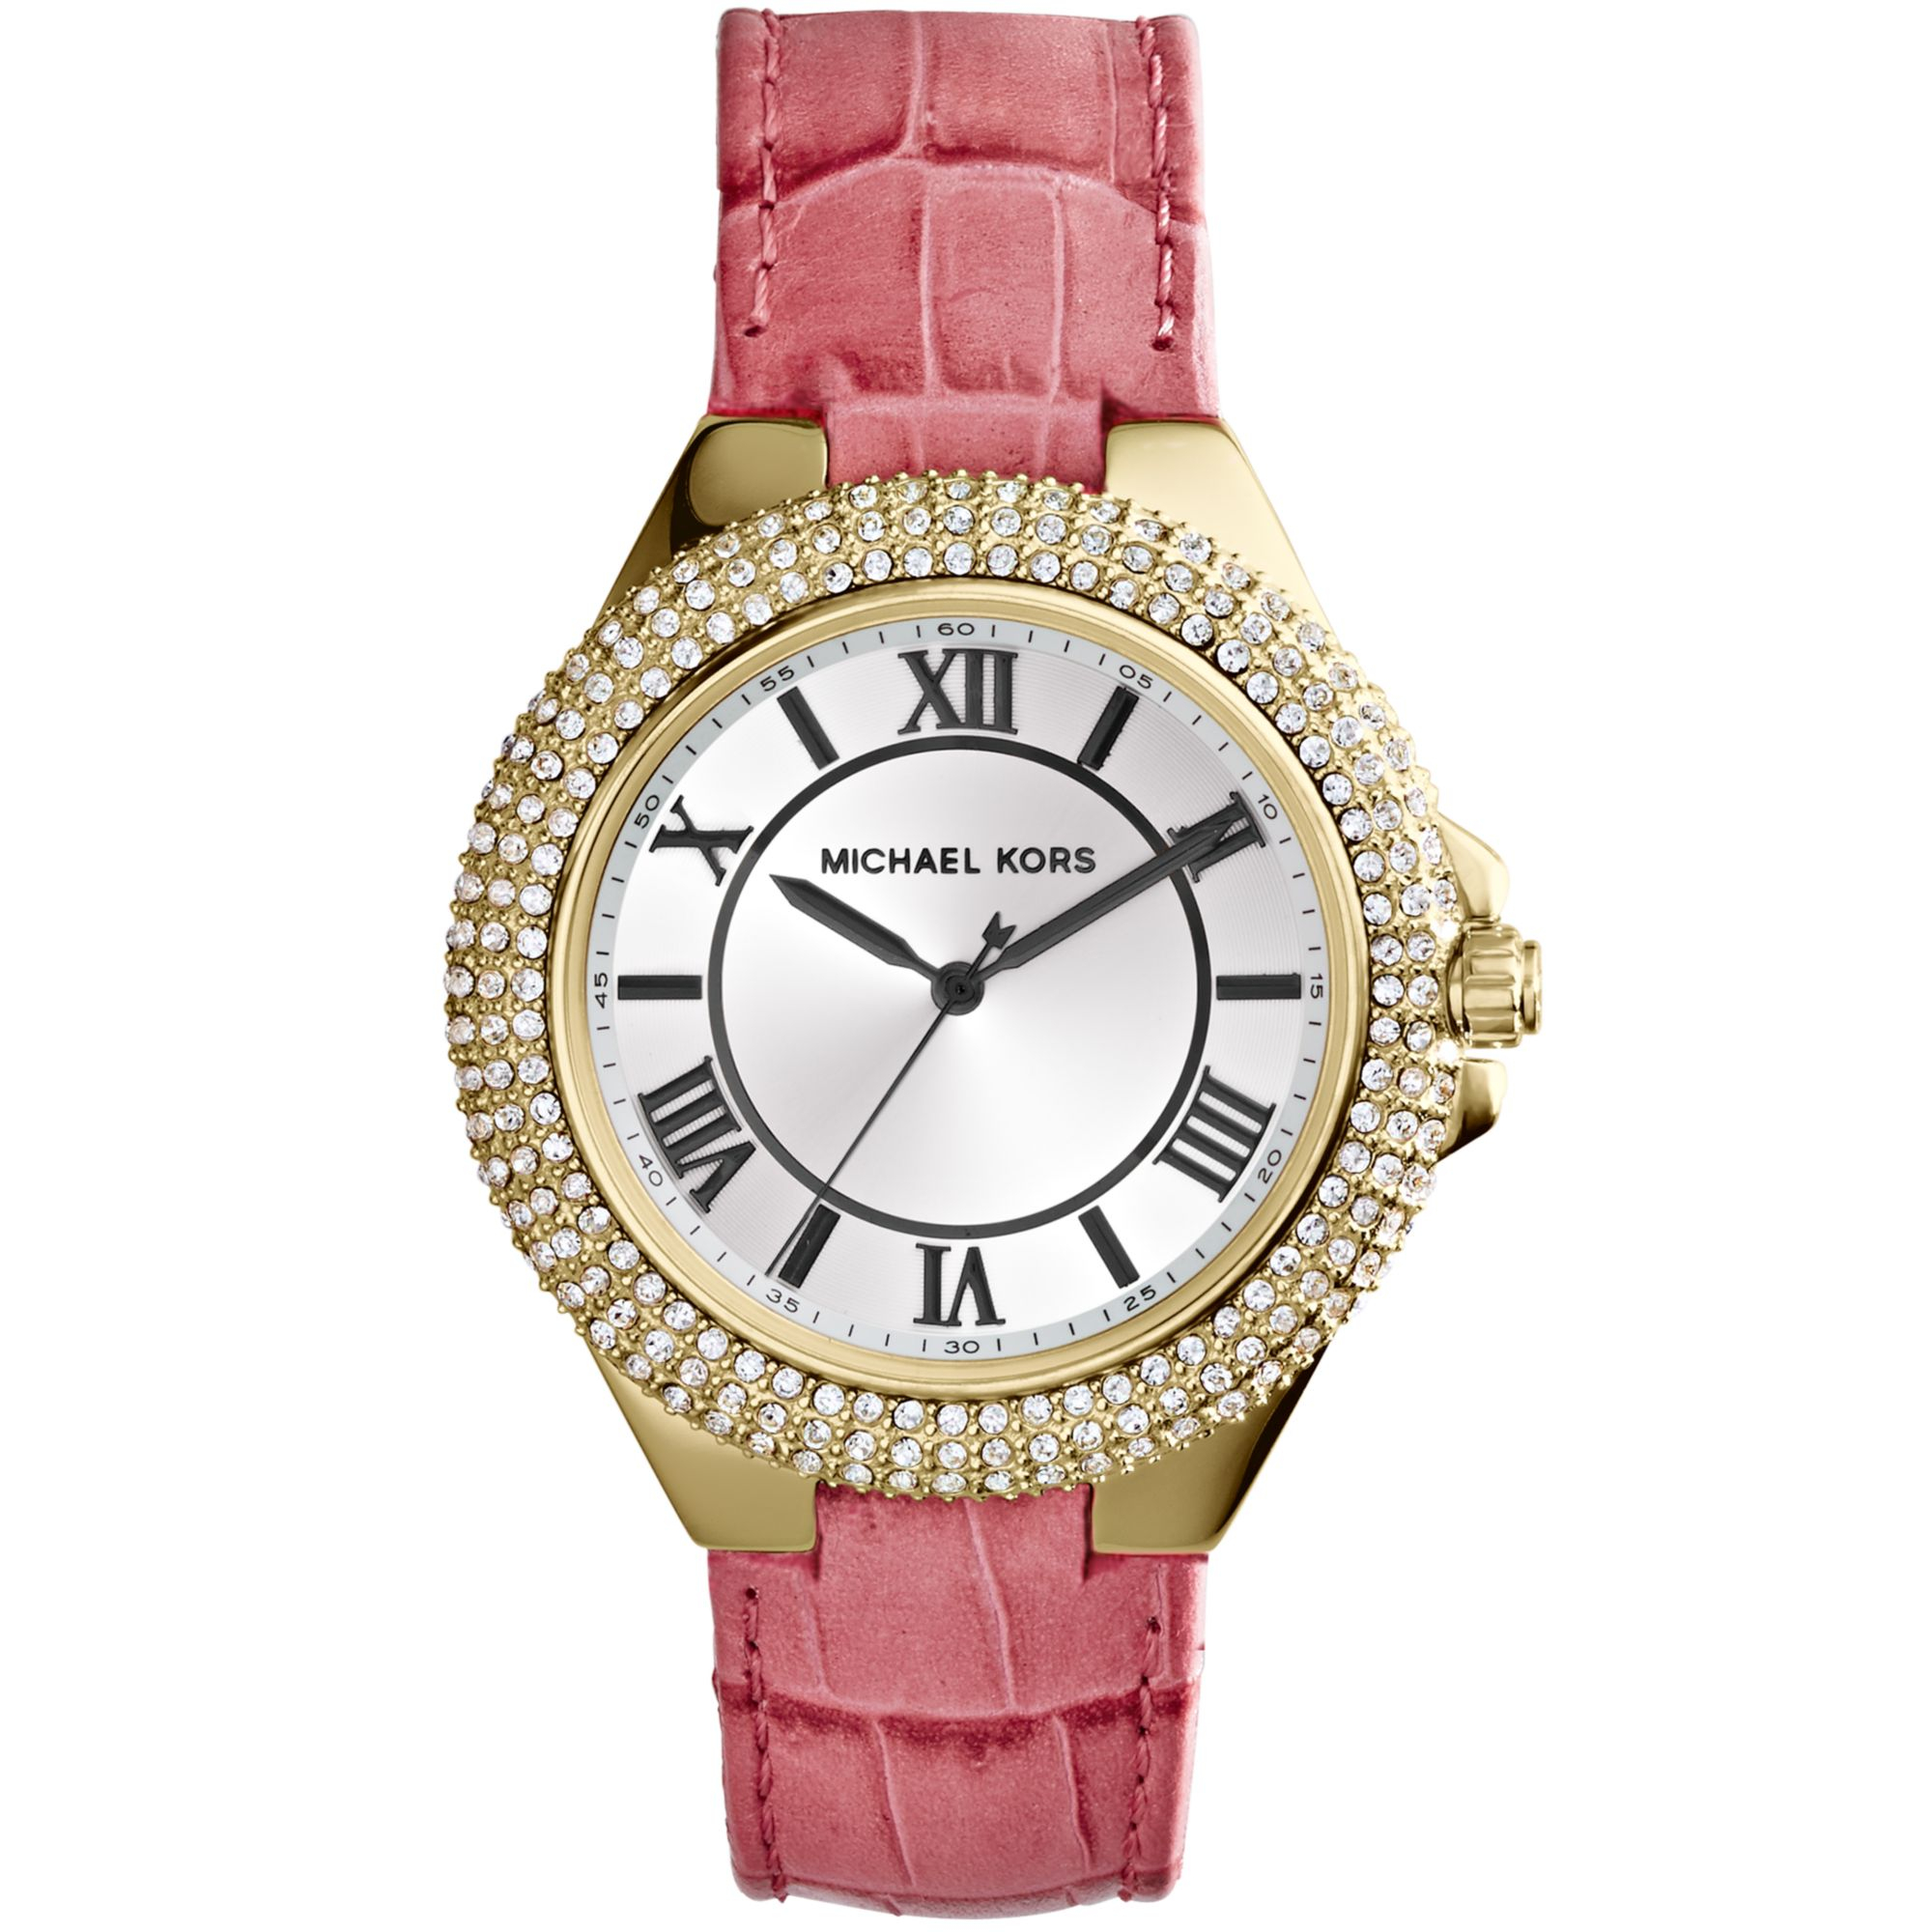 b9ba0c061b Michael Kors Womens Slim Camille Pink Leather Strap 33mm Watch in ...